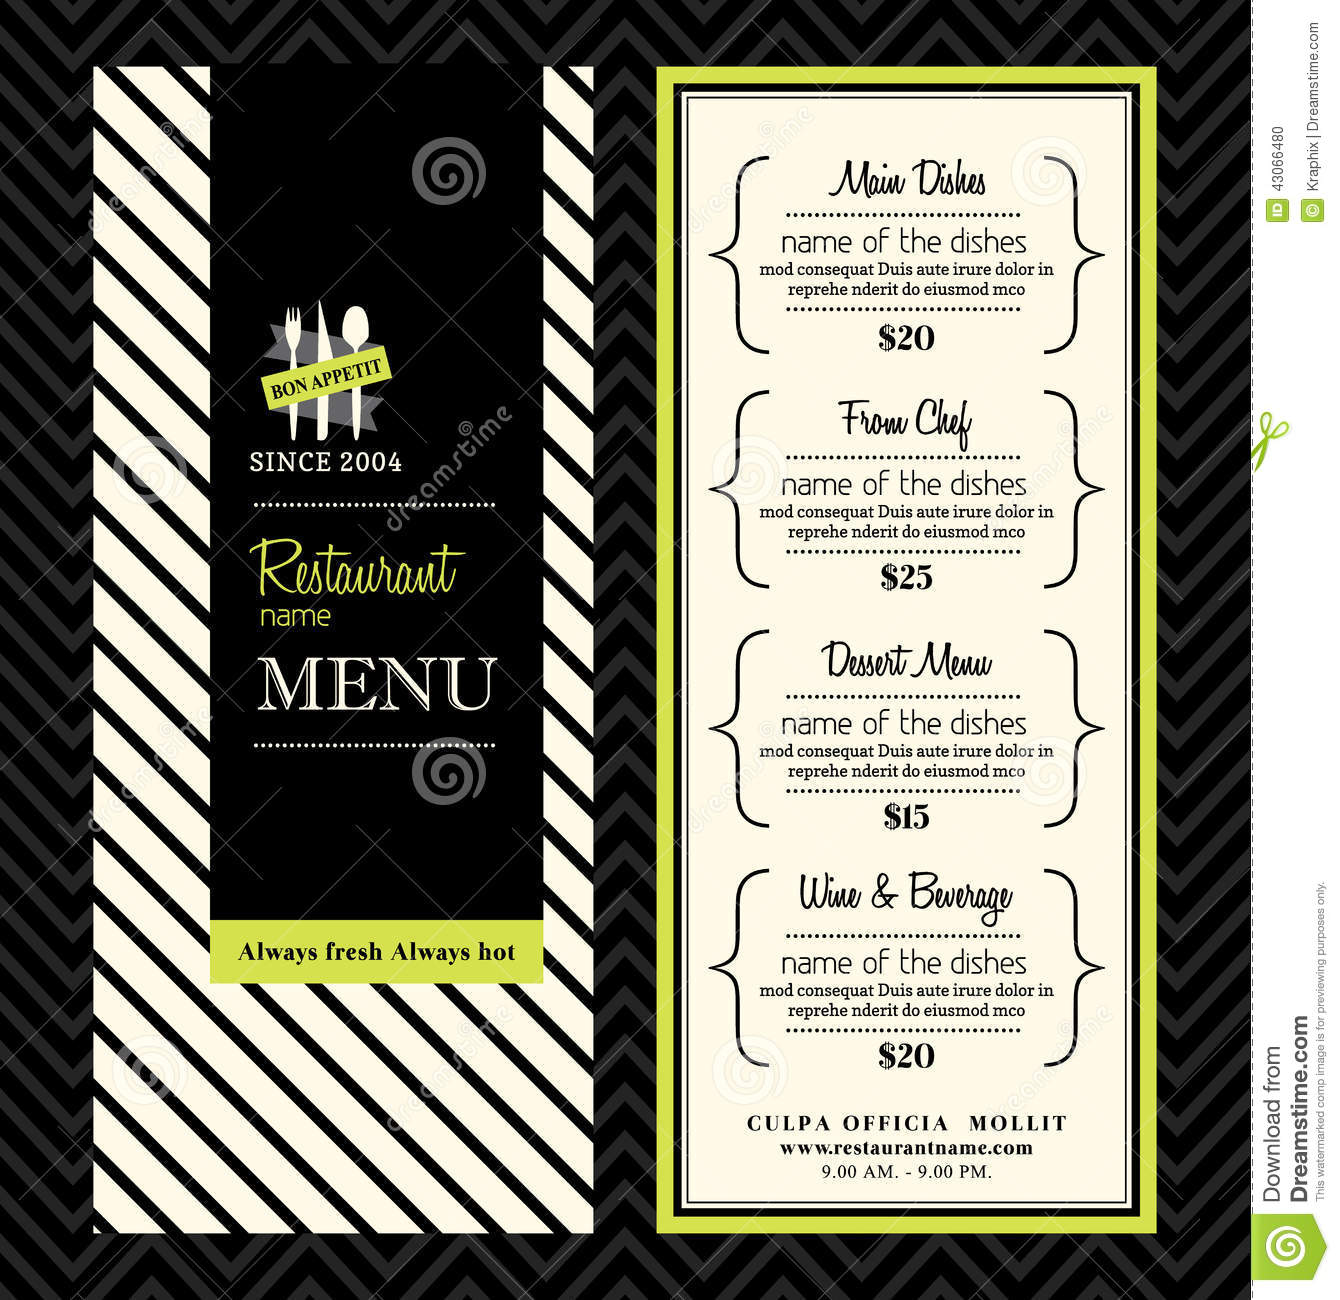 Modern Restaurant Menu Design Template Layout Illustration 43066480 Megapixl